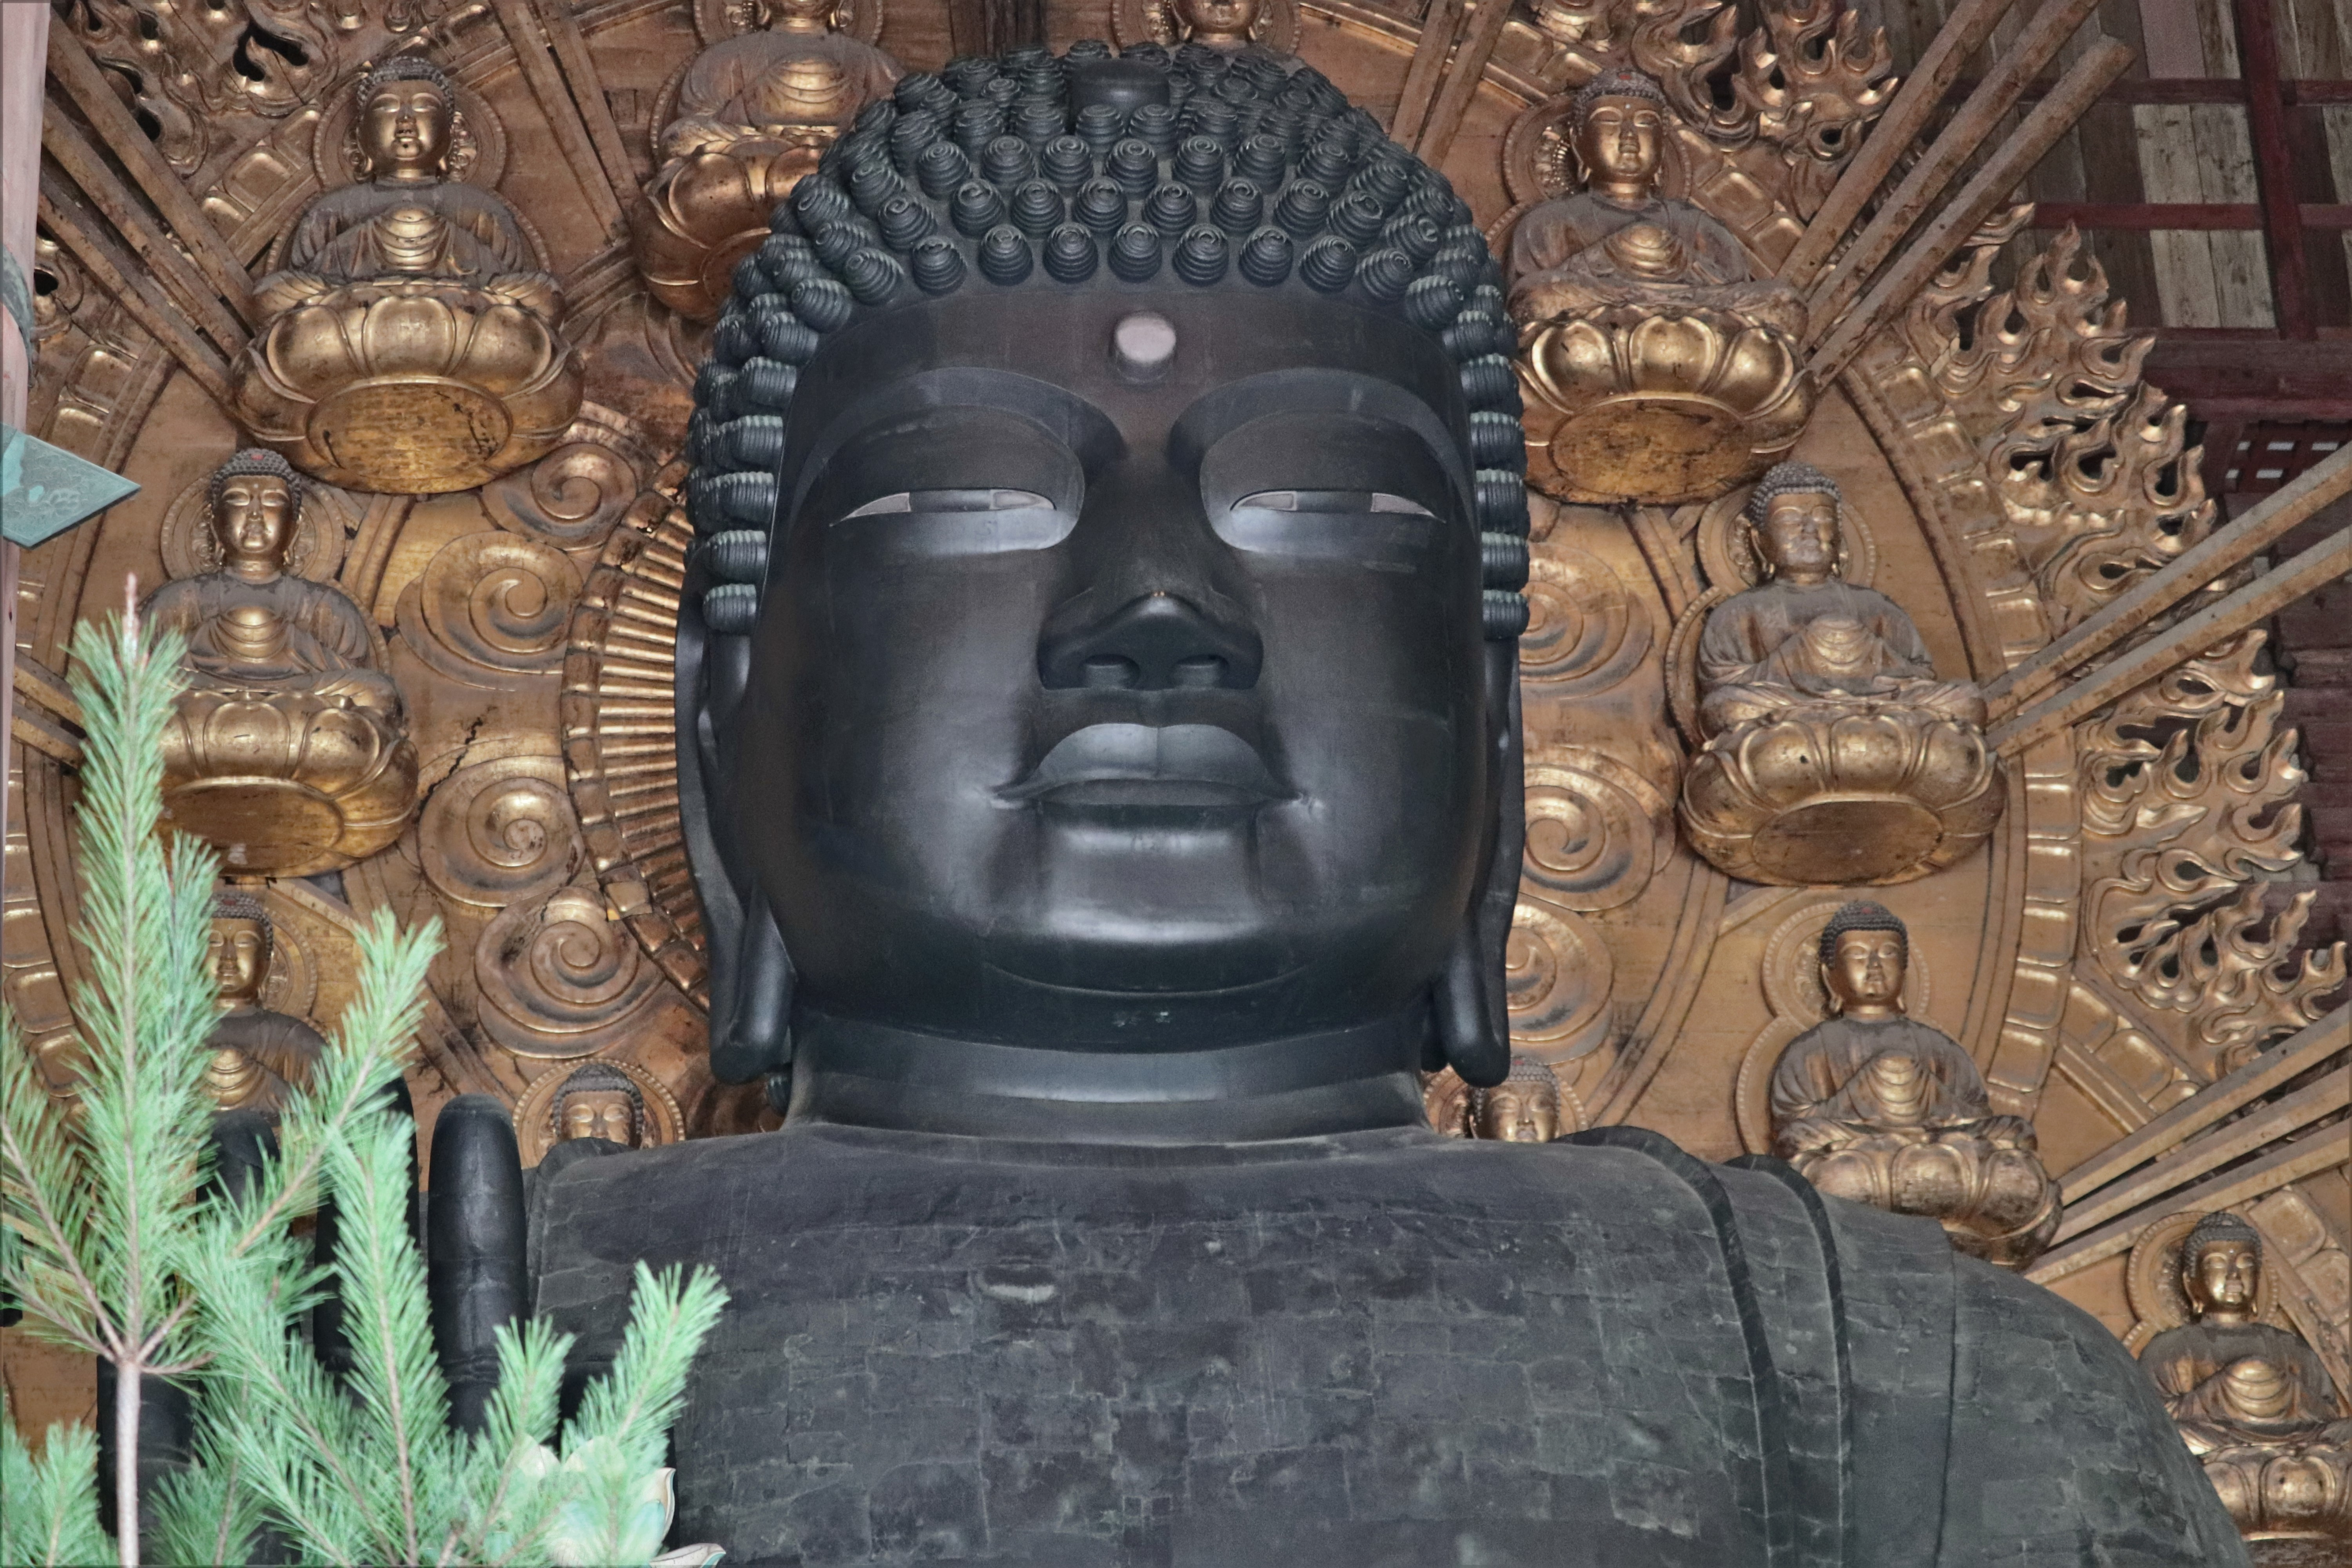 the face of the daibutsu of todai-ji temple